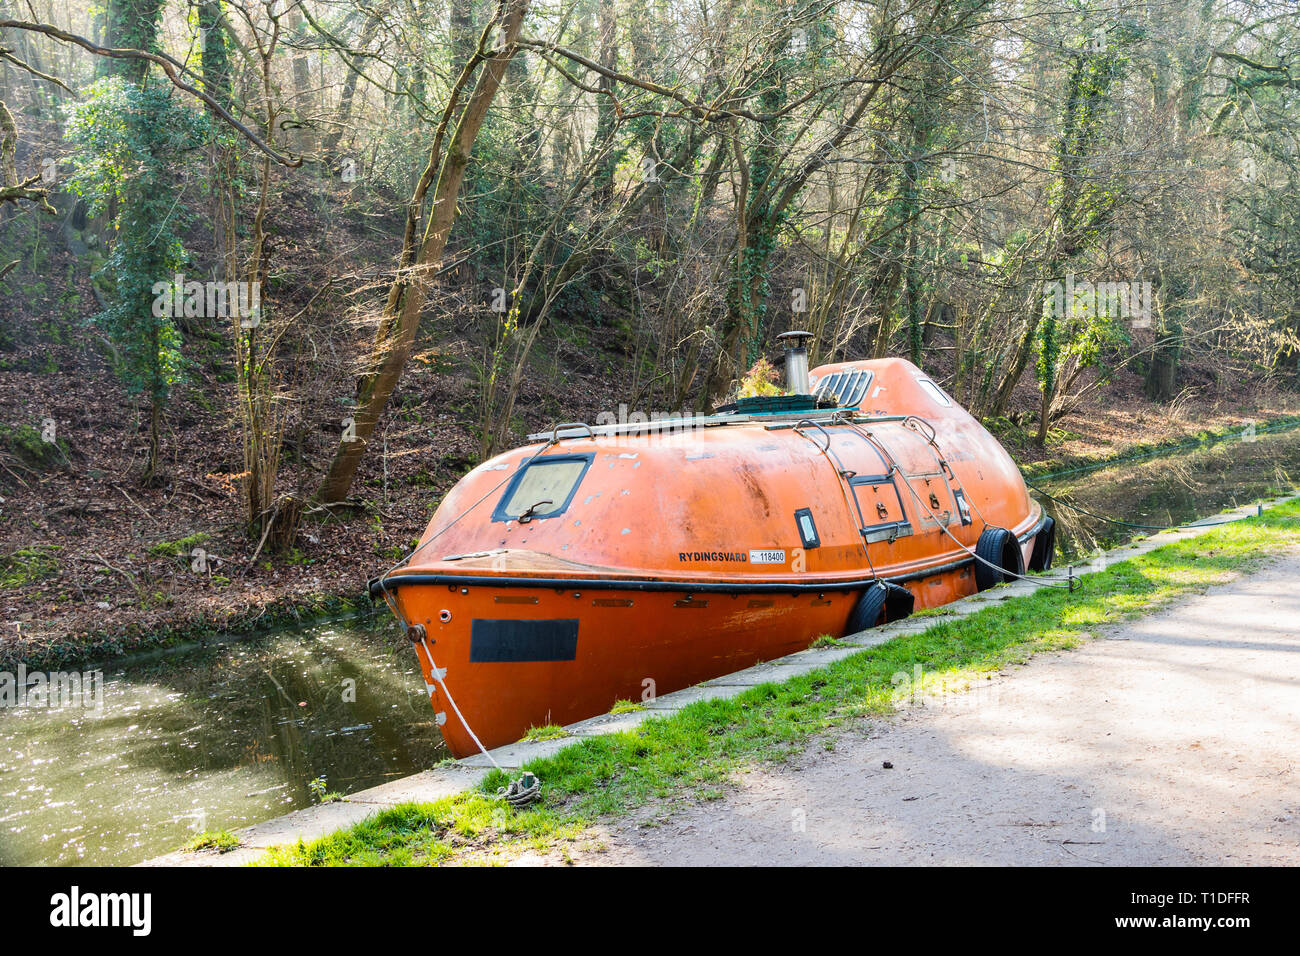 A fully enclosed freefall lifeboat has been converted into a houseboat and is seen moored on the Kennet and Avon canal Stock Photo